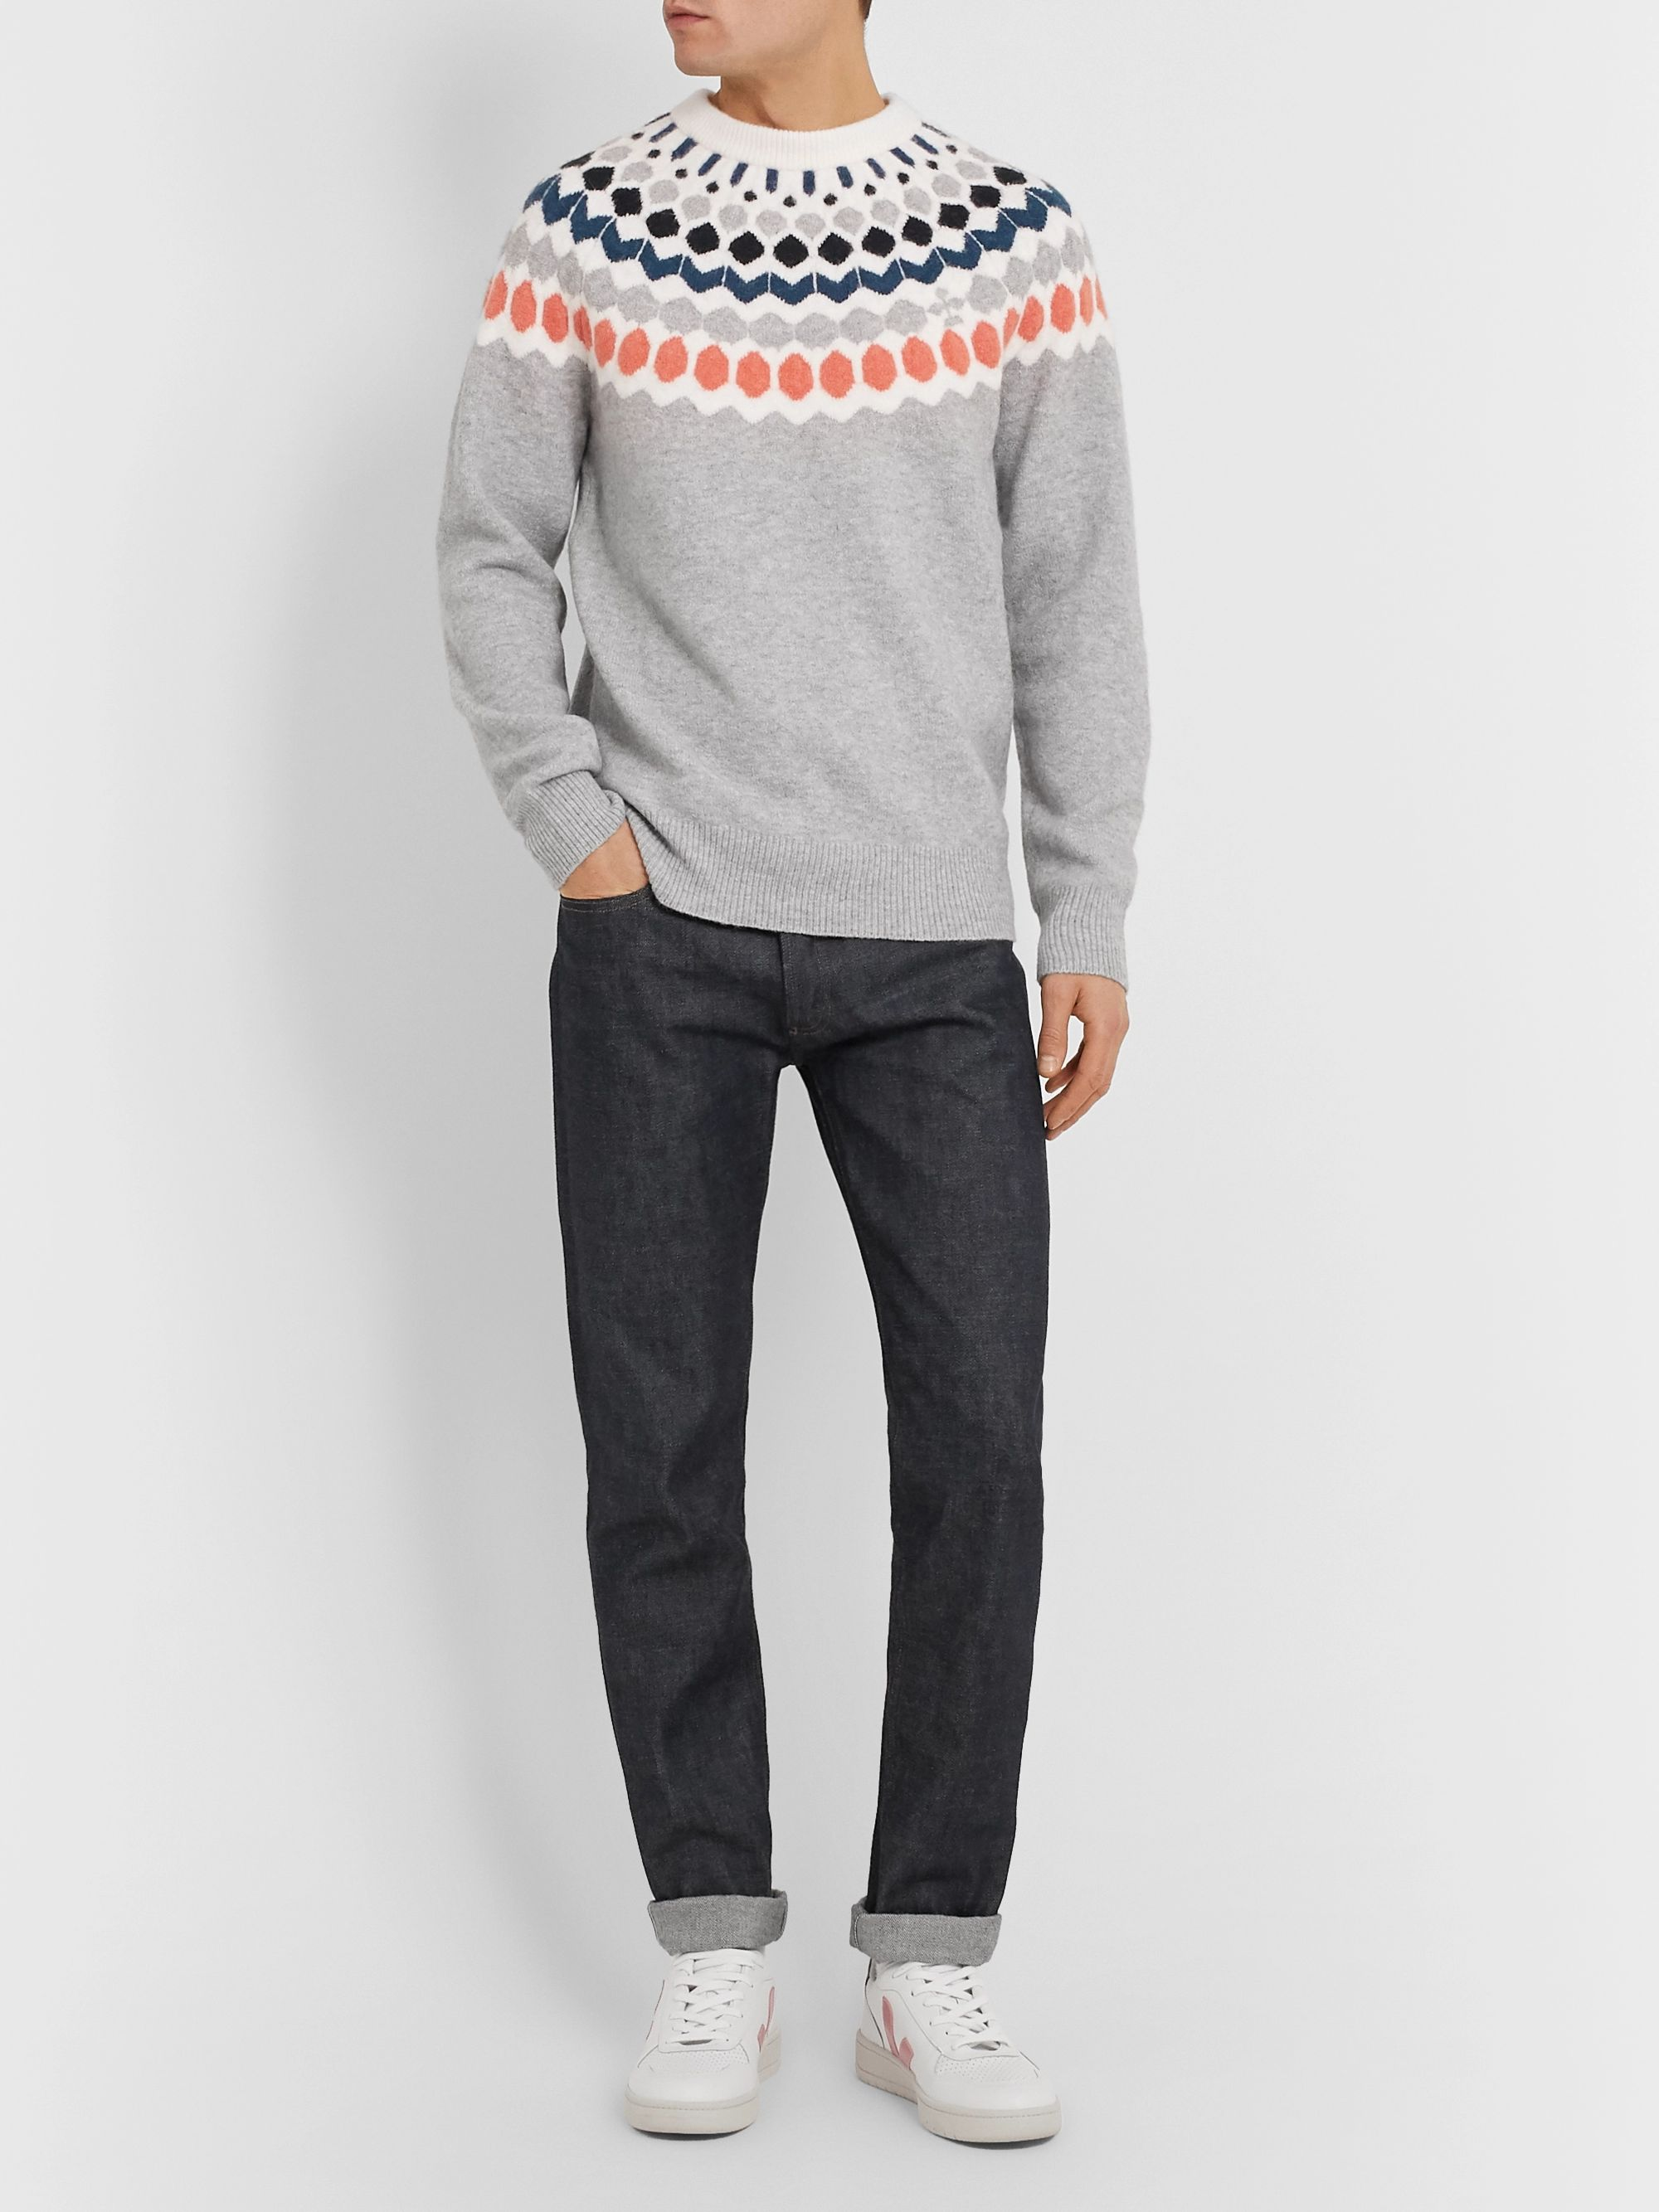 Club Monaco Fair Isle Knitted Sweater